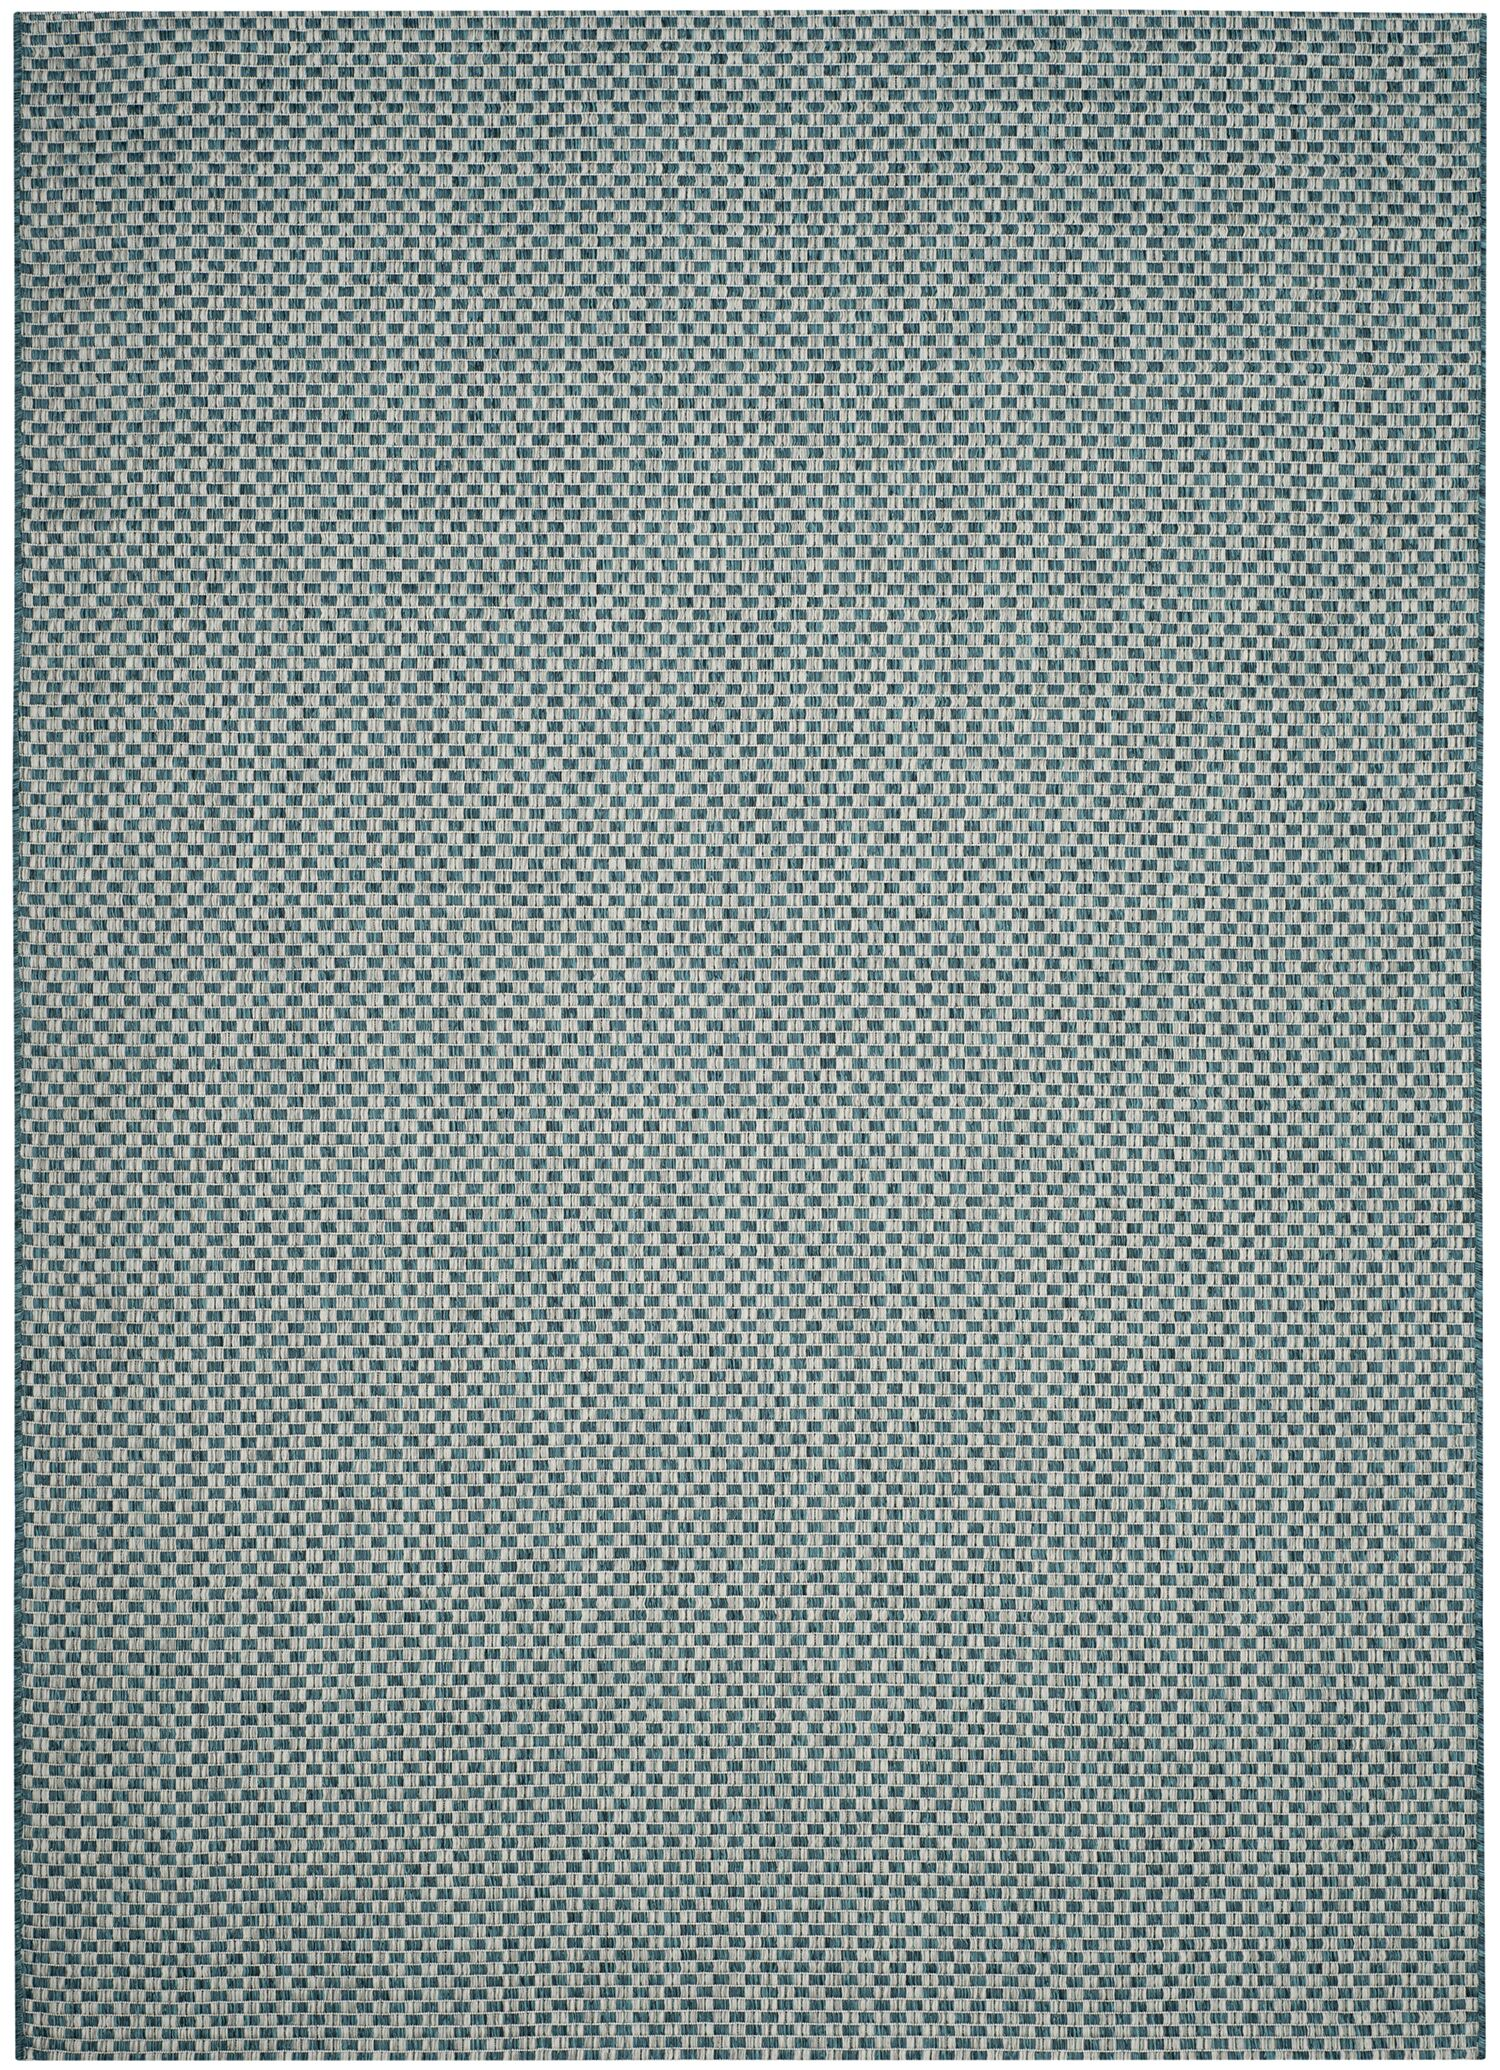 Jefferson Place Turquoise/Light Gray Outdoor Area Rug Rug Size: Rectangle 6'7